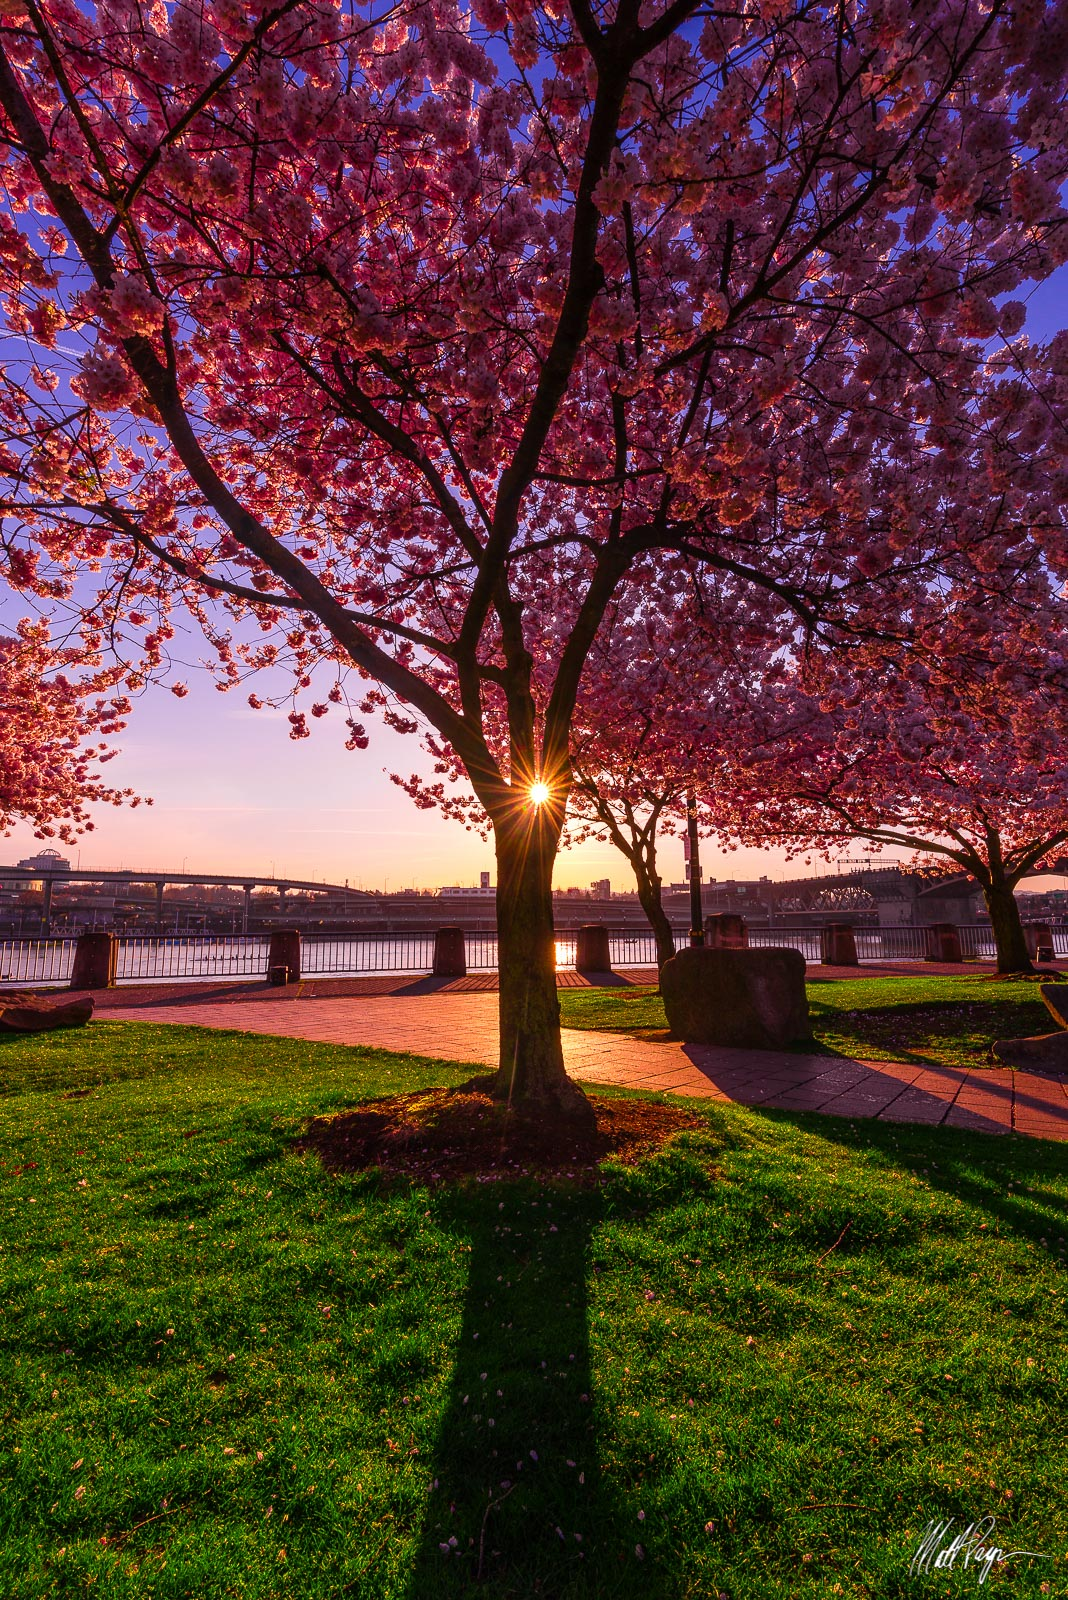 This fine art landscape photograph featurescherry blossoms in spring and a sunstar at sunriseon the Willamette River...